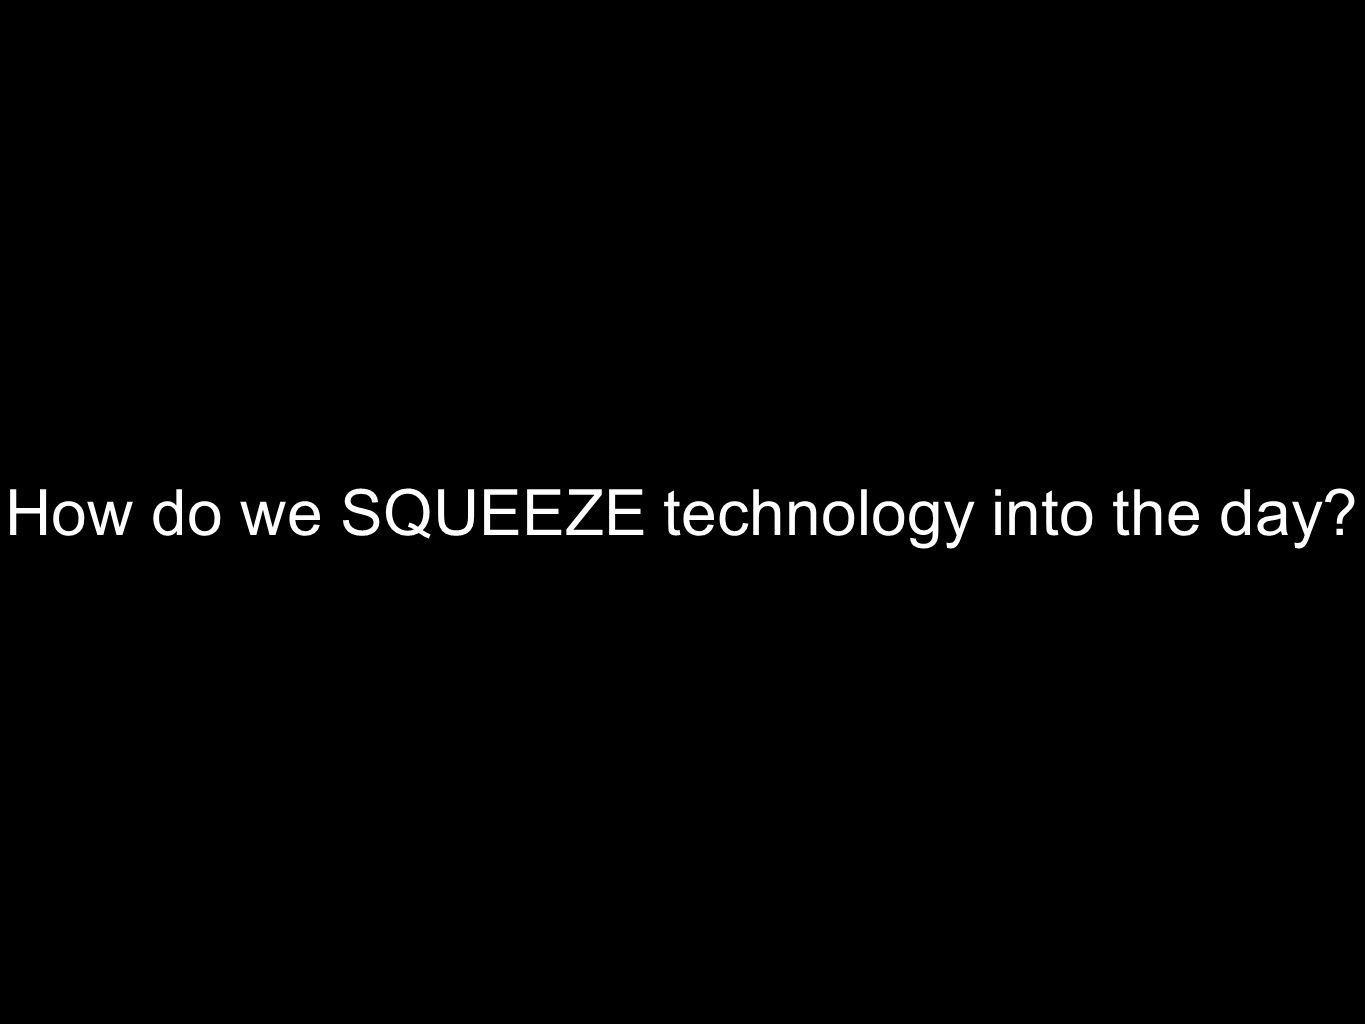 How do we SQUEEZE technology into the day?